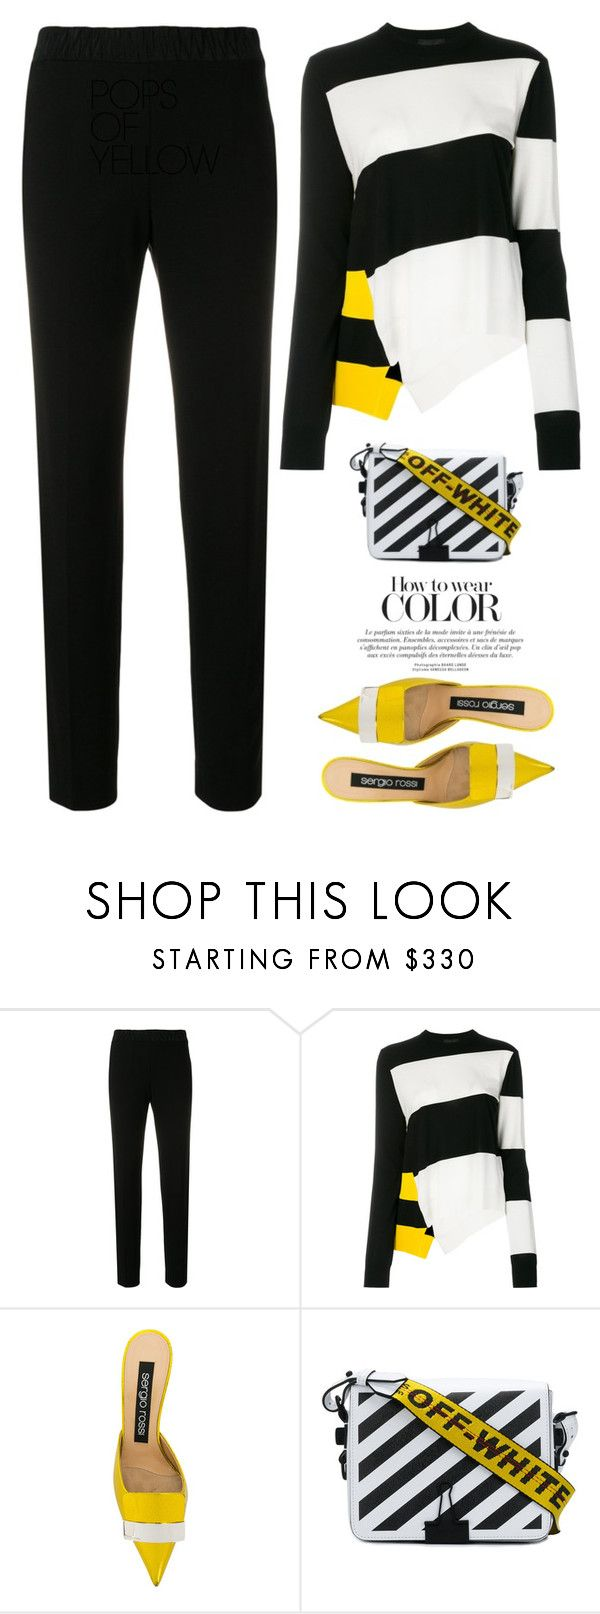 """""""Bits Of Yellow"""" by hollowpoint-smile ❤ liked on Polyvore featuring Dorothee Schumacher, Calvin Klein 205W39NYC, Sergio Rossi, Off-White and modern"""